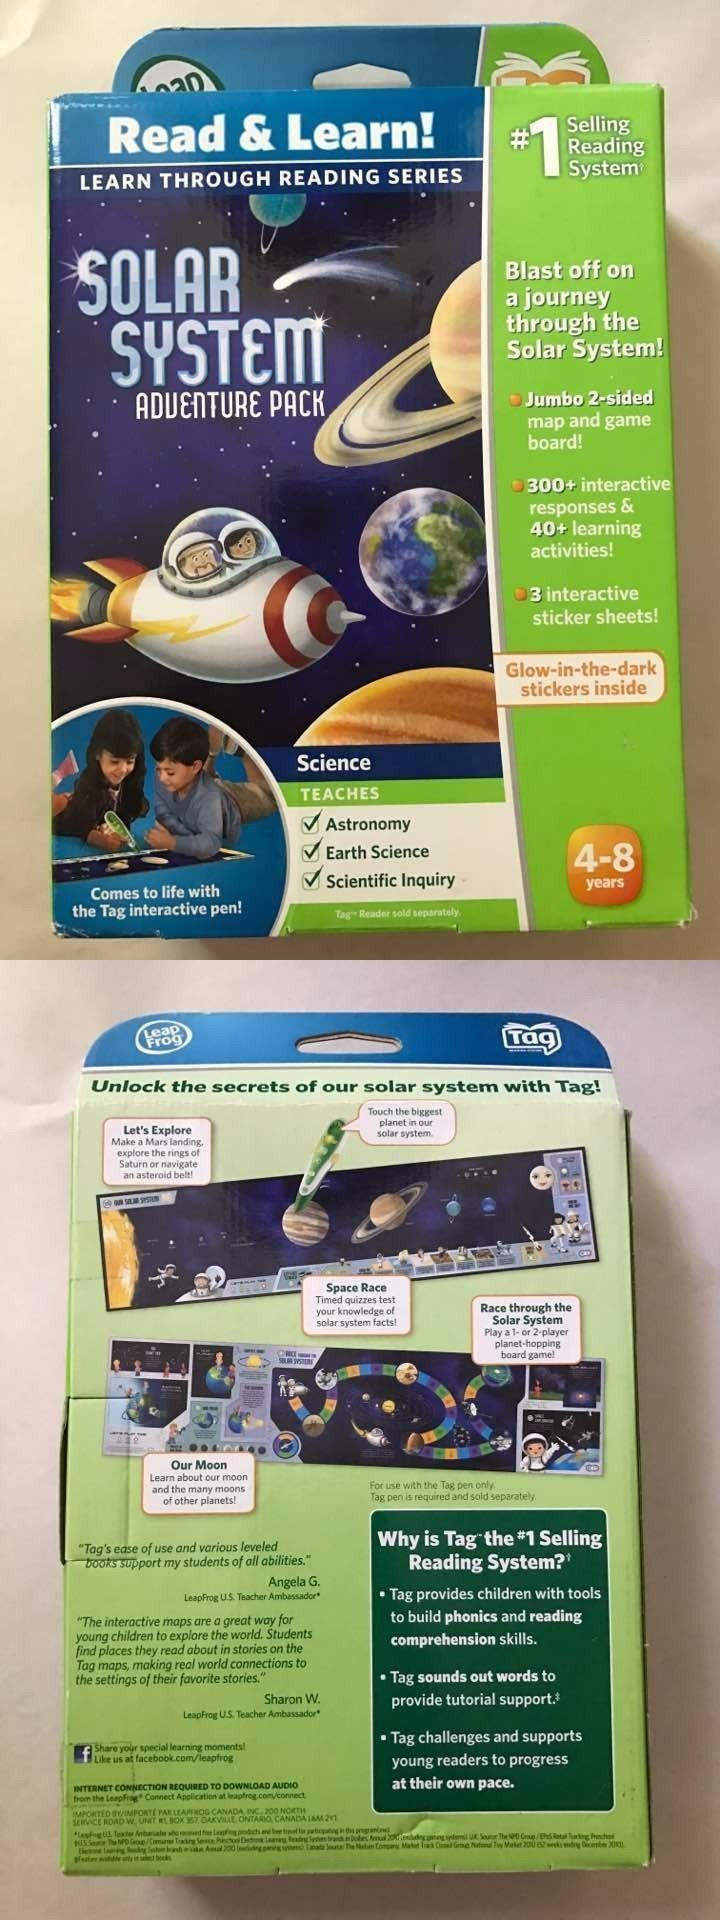 Game Cartridges and Game Books 177916: Brand New Leapfrog Leapreader Solar System Adventure Pack Learning Toys Kids -> BUY IT NOW ONLY: $33.14 on eBay!